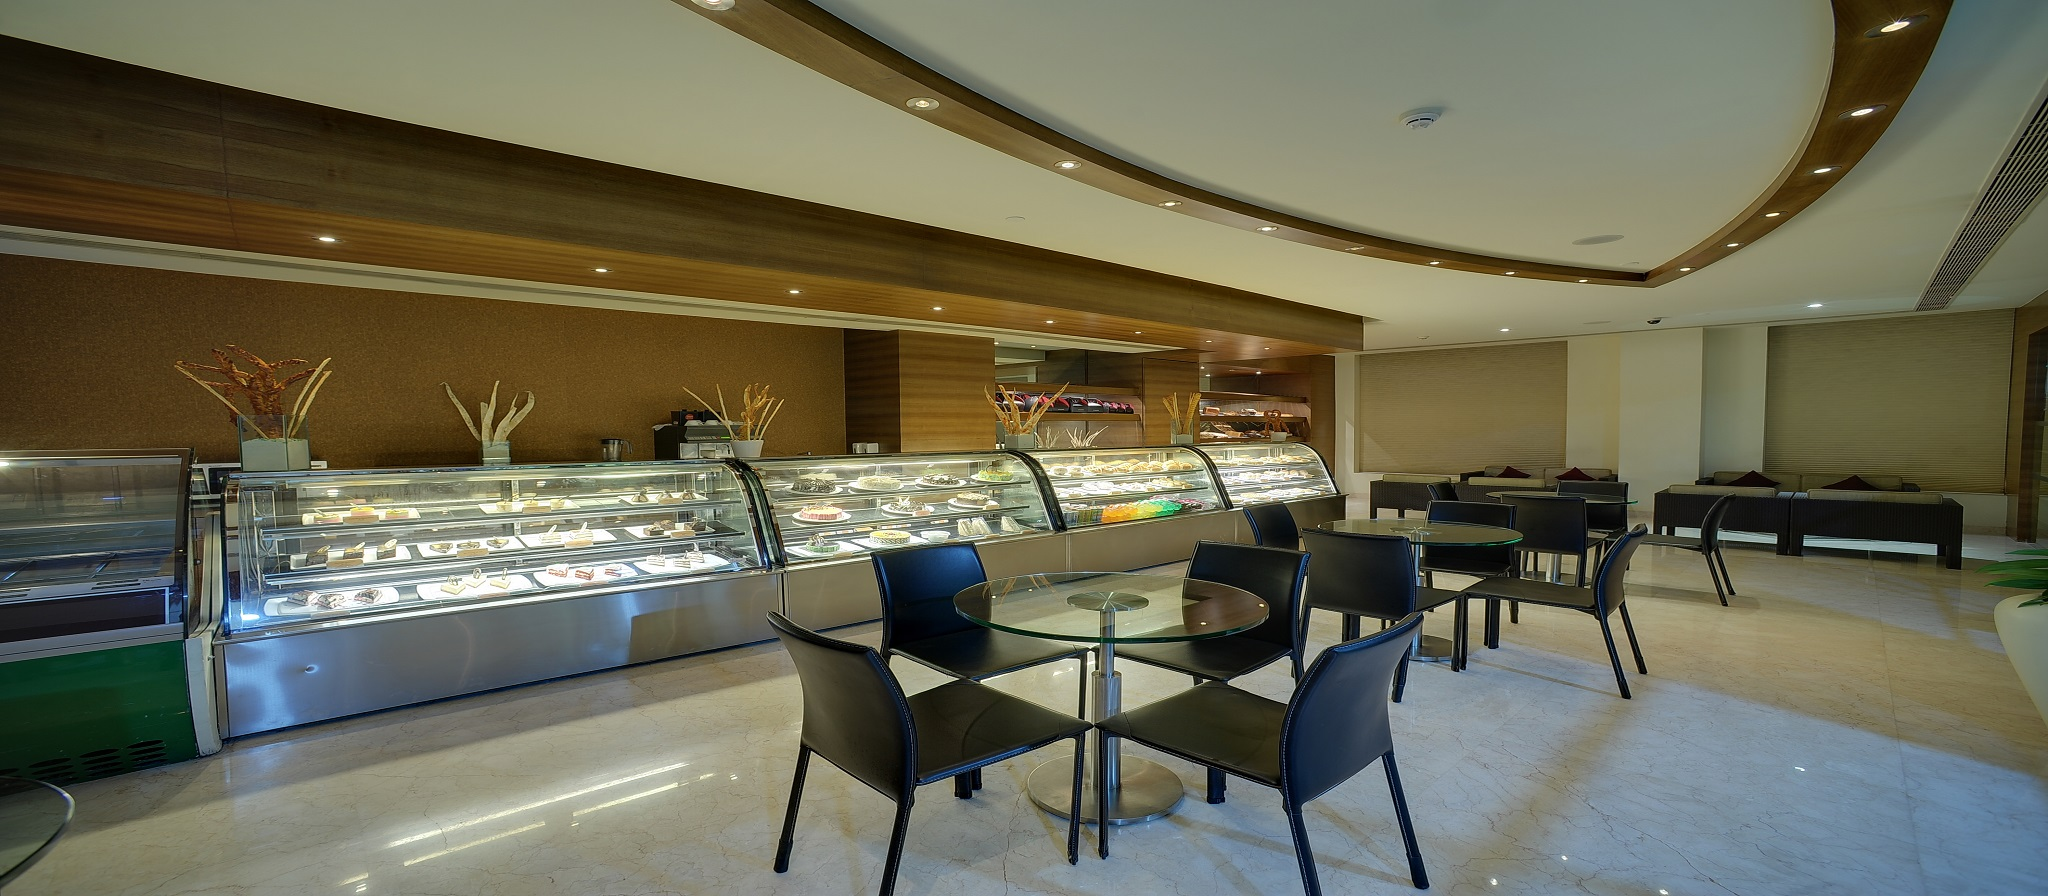 Best Confectionary In The City - Vivanta Panaji, Goa -1